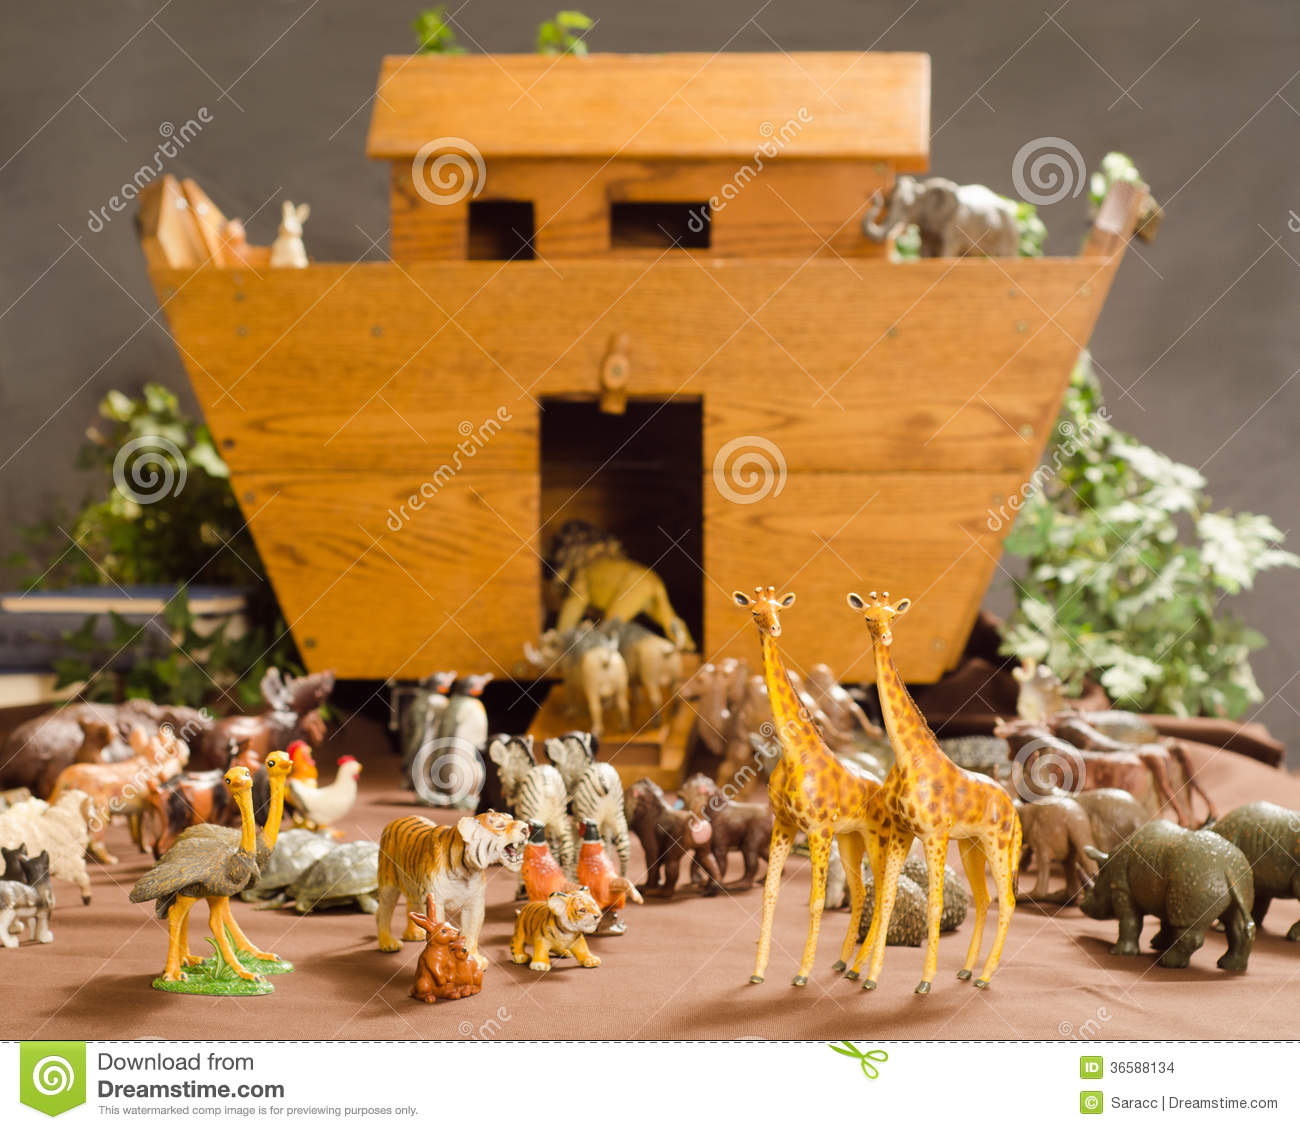 Toys animals surrounding a wooden toy chest made in the shape of Noah ...